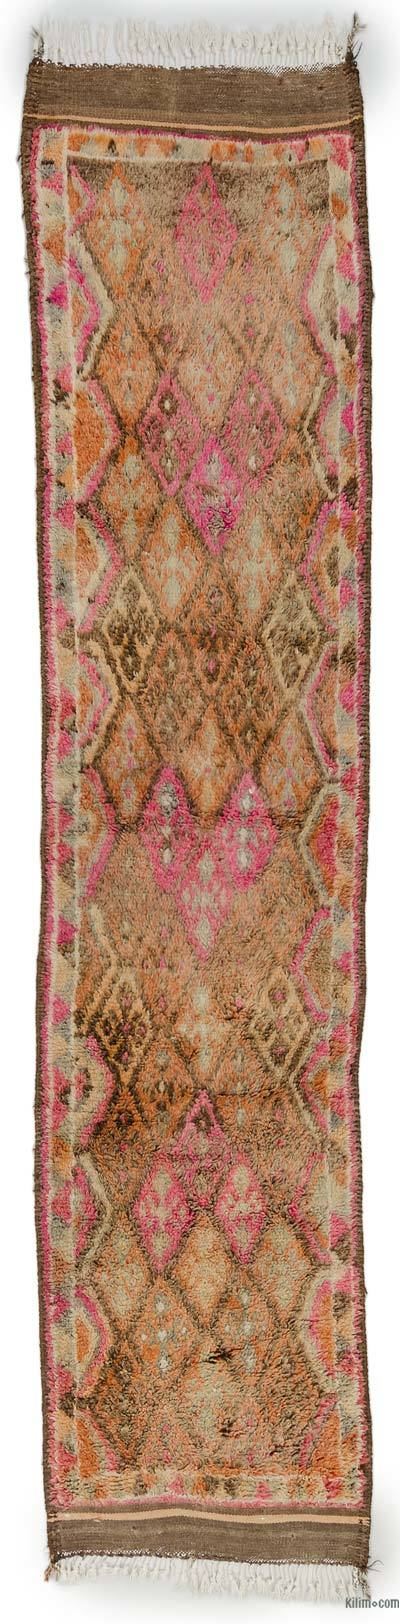 "Vintage Turkish Runner Rug - 2' 10"" x 12' 10"" (34 in. x 154 in.)"